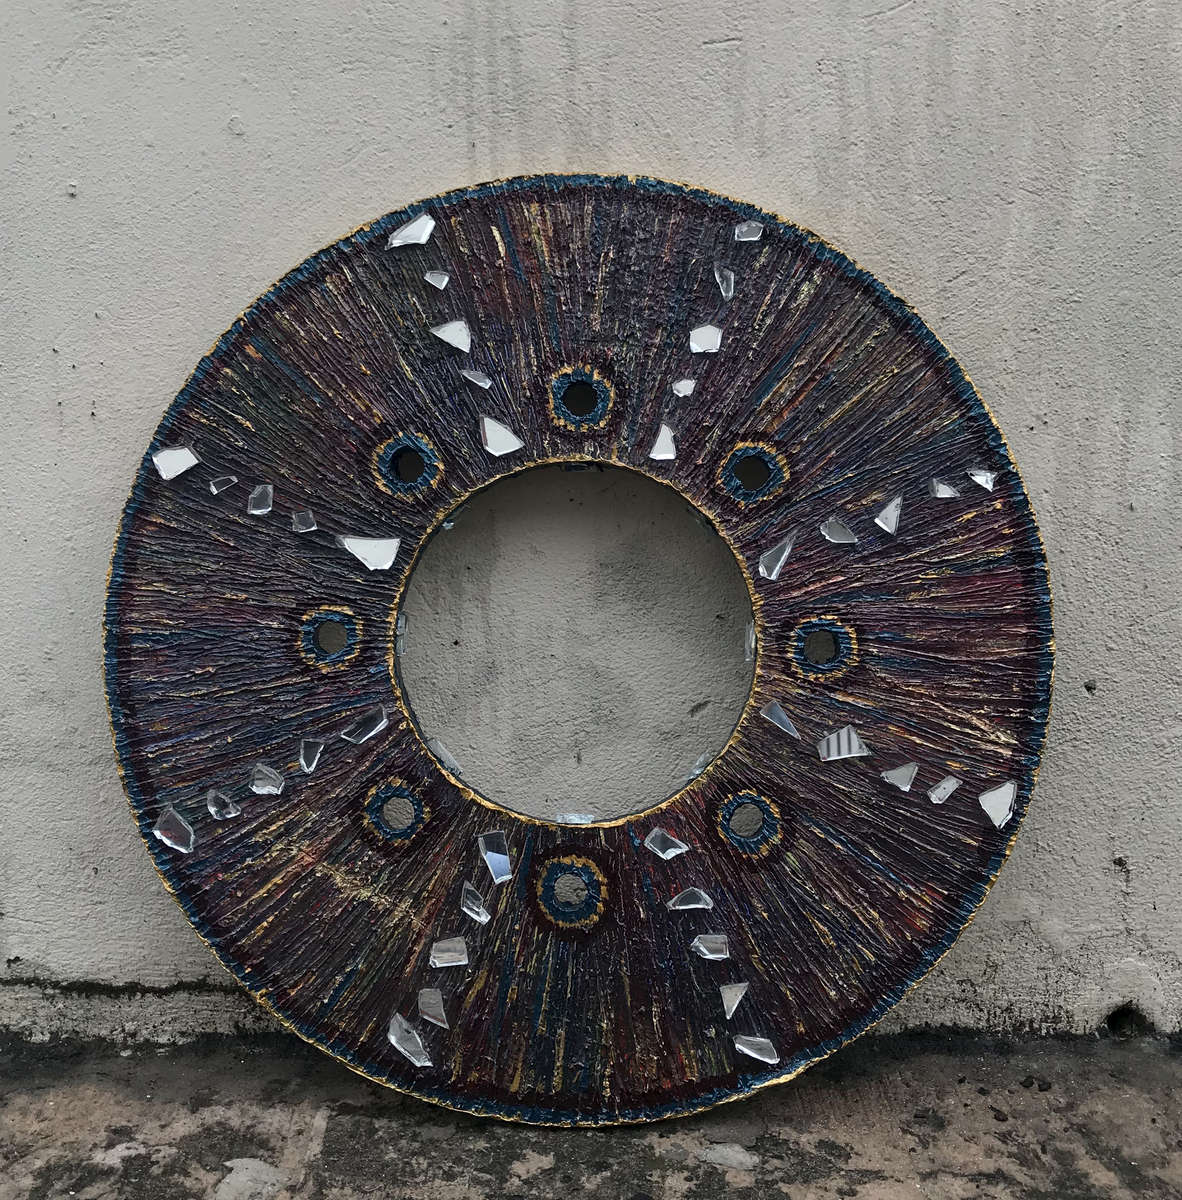 Acrylics and car paint on Glastherm disk$400SOLD